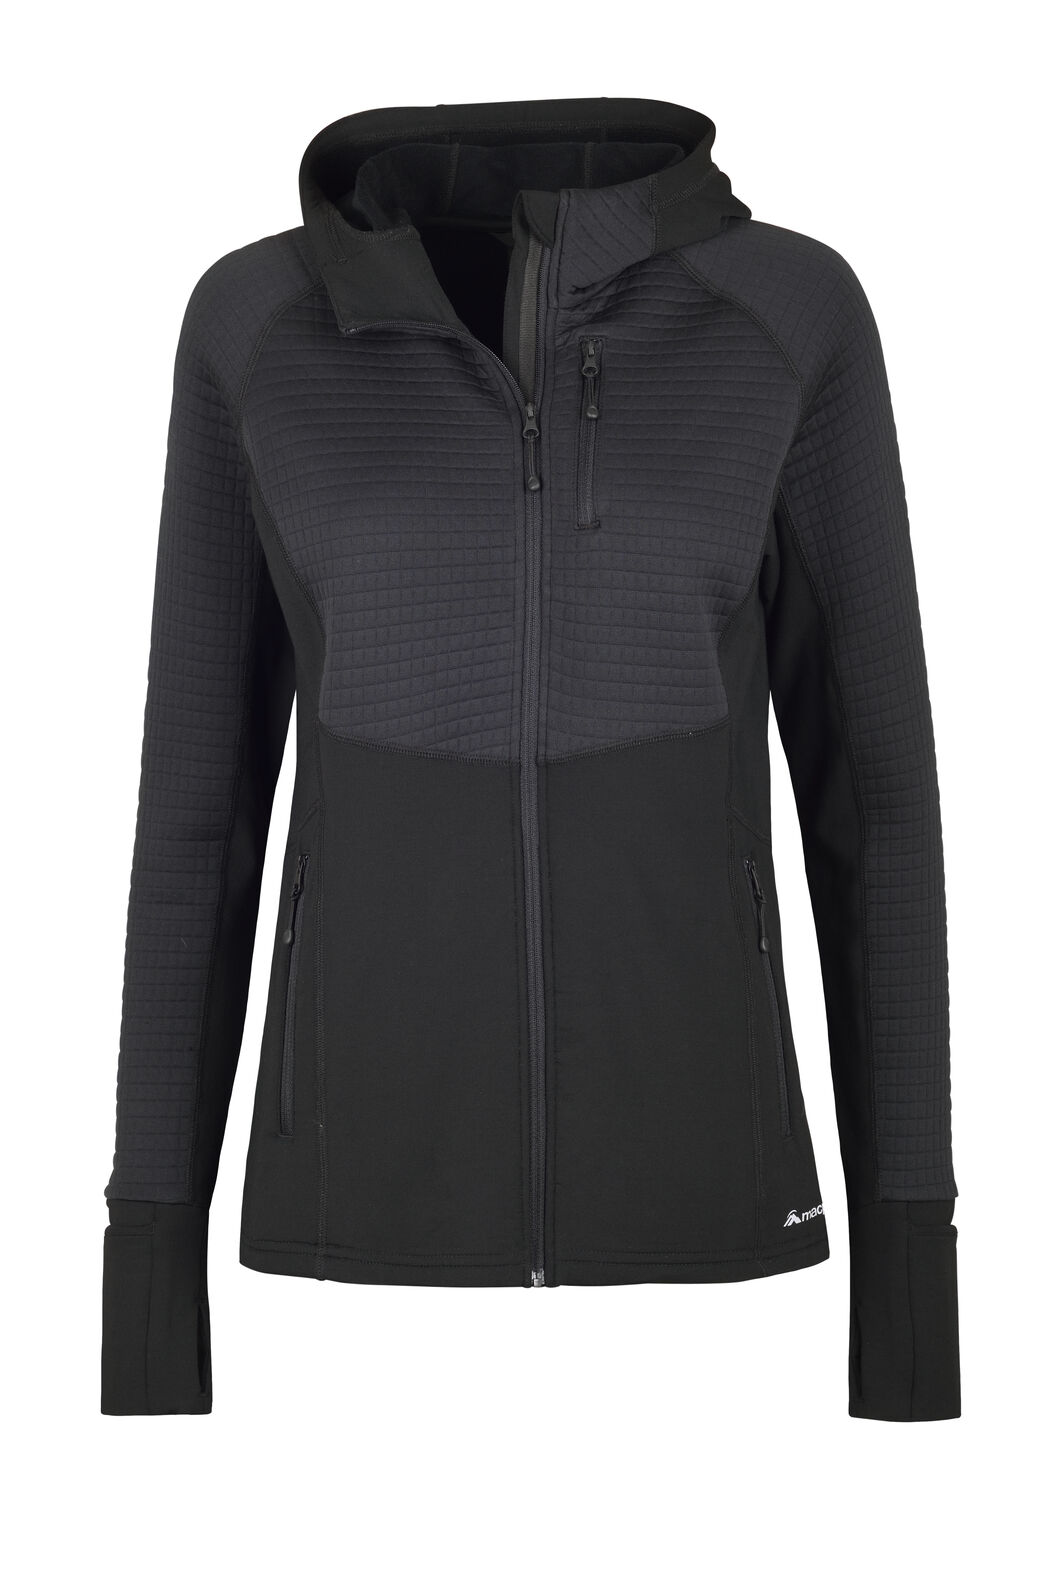 Macpac Delta Merino Blend Jacket — Women's, Black, hi-res